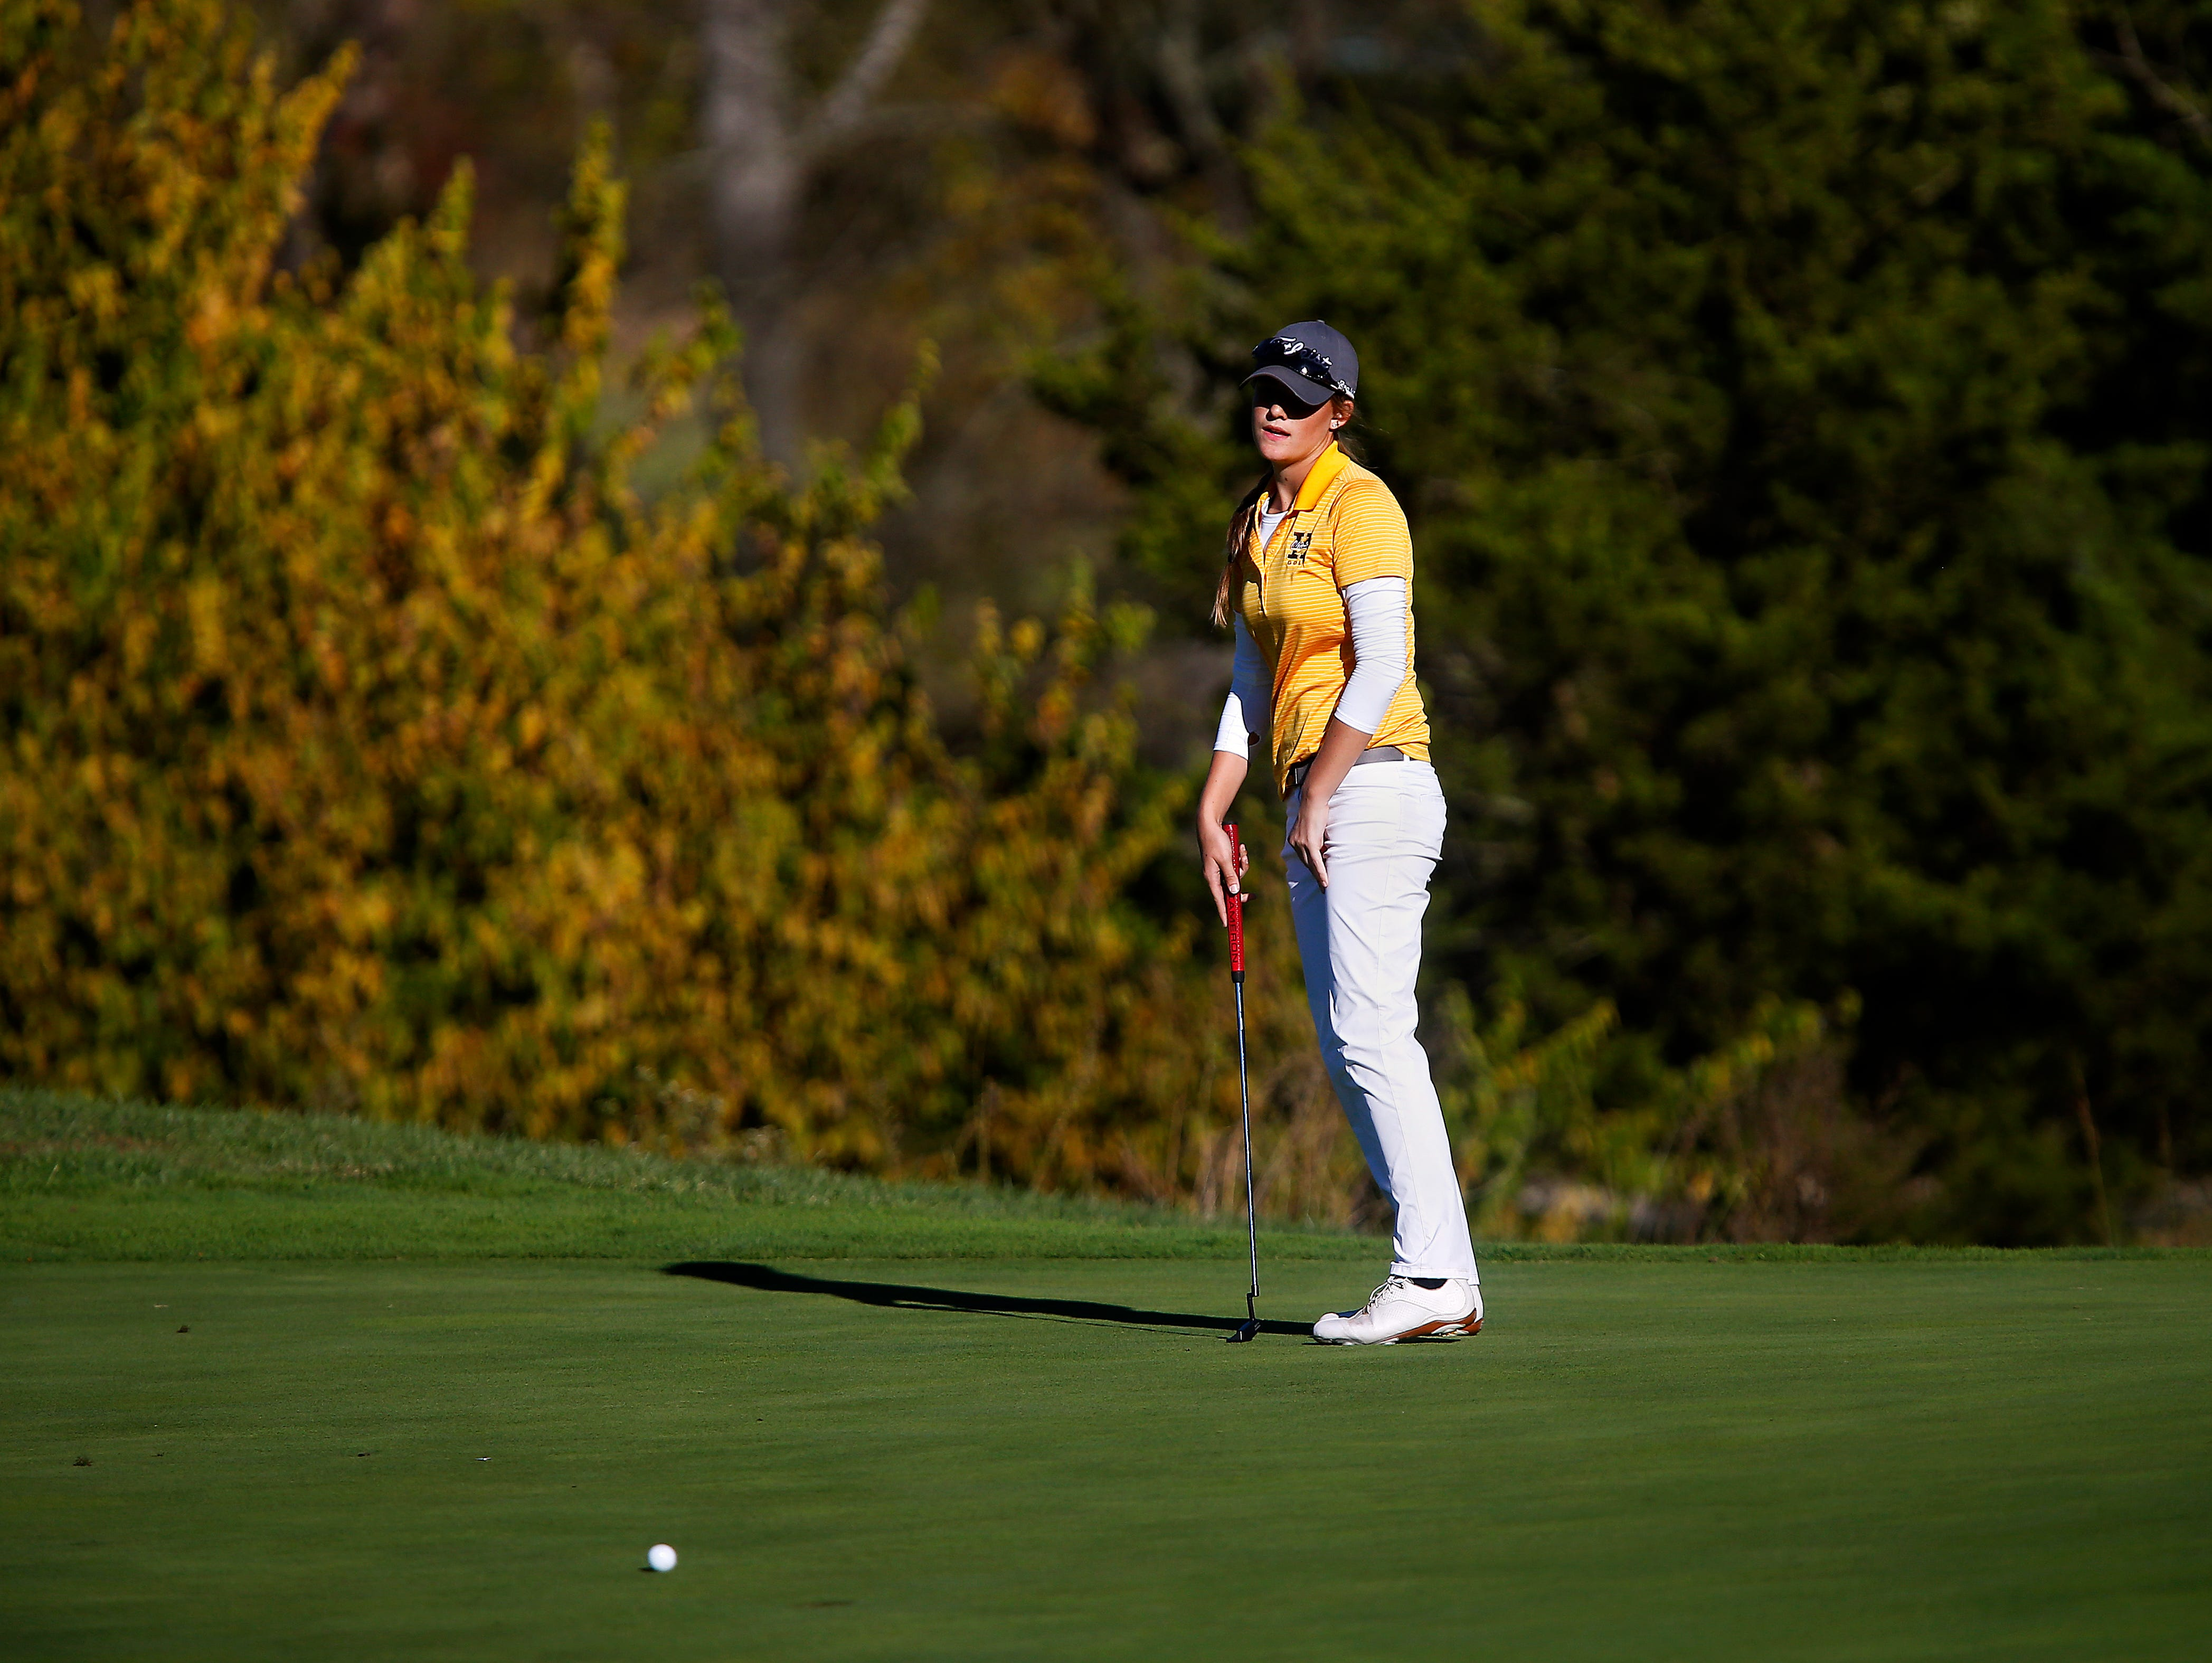 Kickapoo High School golfer Ari Acuff reacts after missing an eagle putt on the 18th hole during the 2015 MSHSAA Class 2 Girls Golf State Championship played at Rivercut Golf Club in Springfield, Mo. on Oct. 13, 2015. The putt would have forced a tie if made but, instead, Taylor BeDell of Warrensburg won the state championship outright.